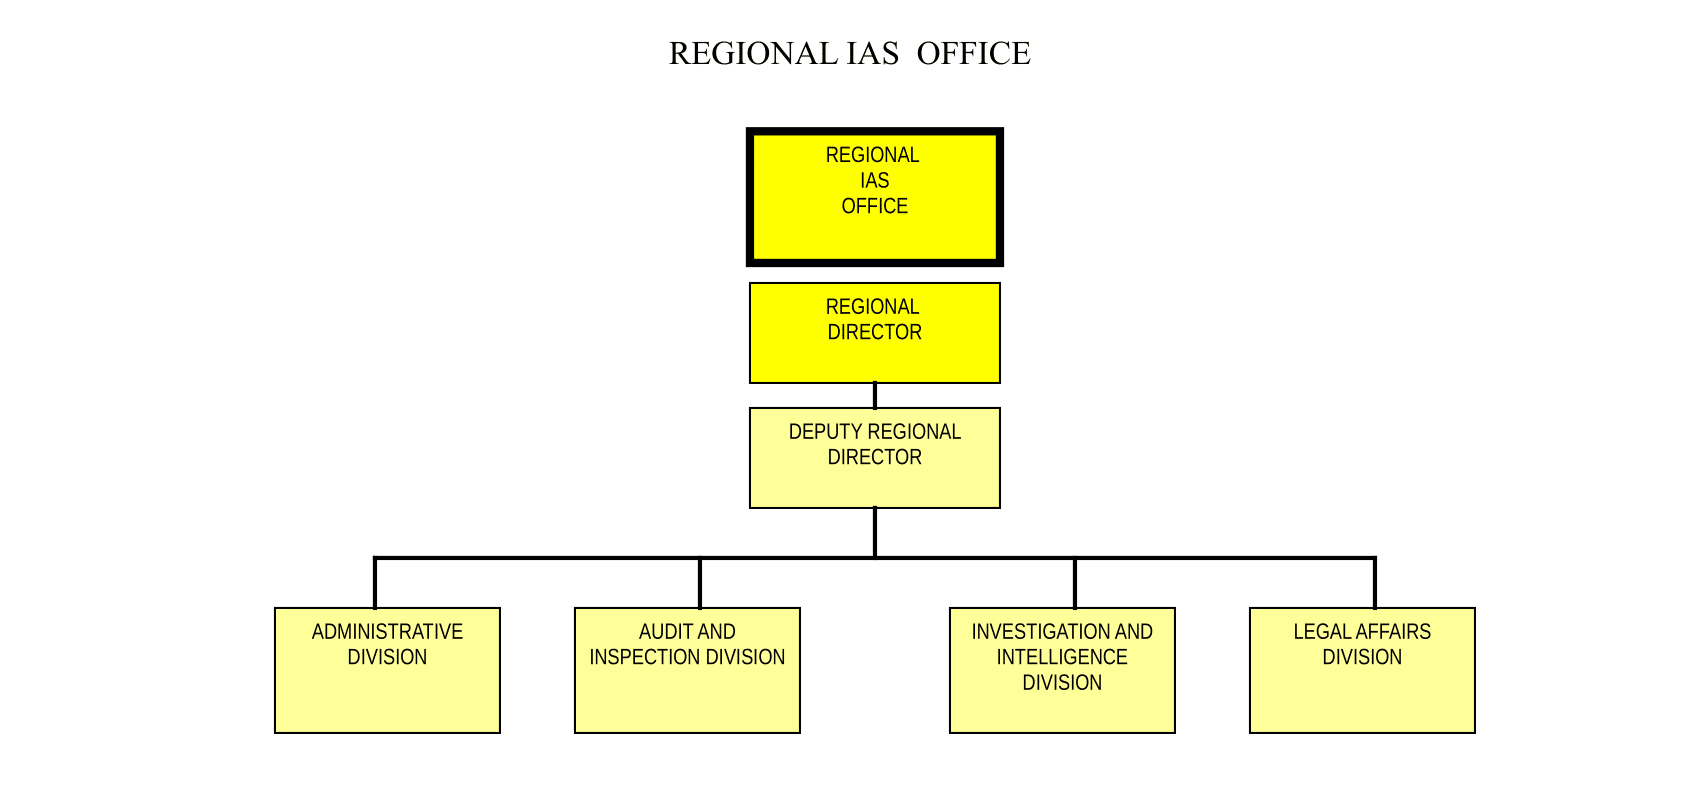 REGIONAL INTERNAL AFFAIRS SERVICE